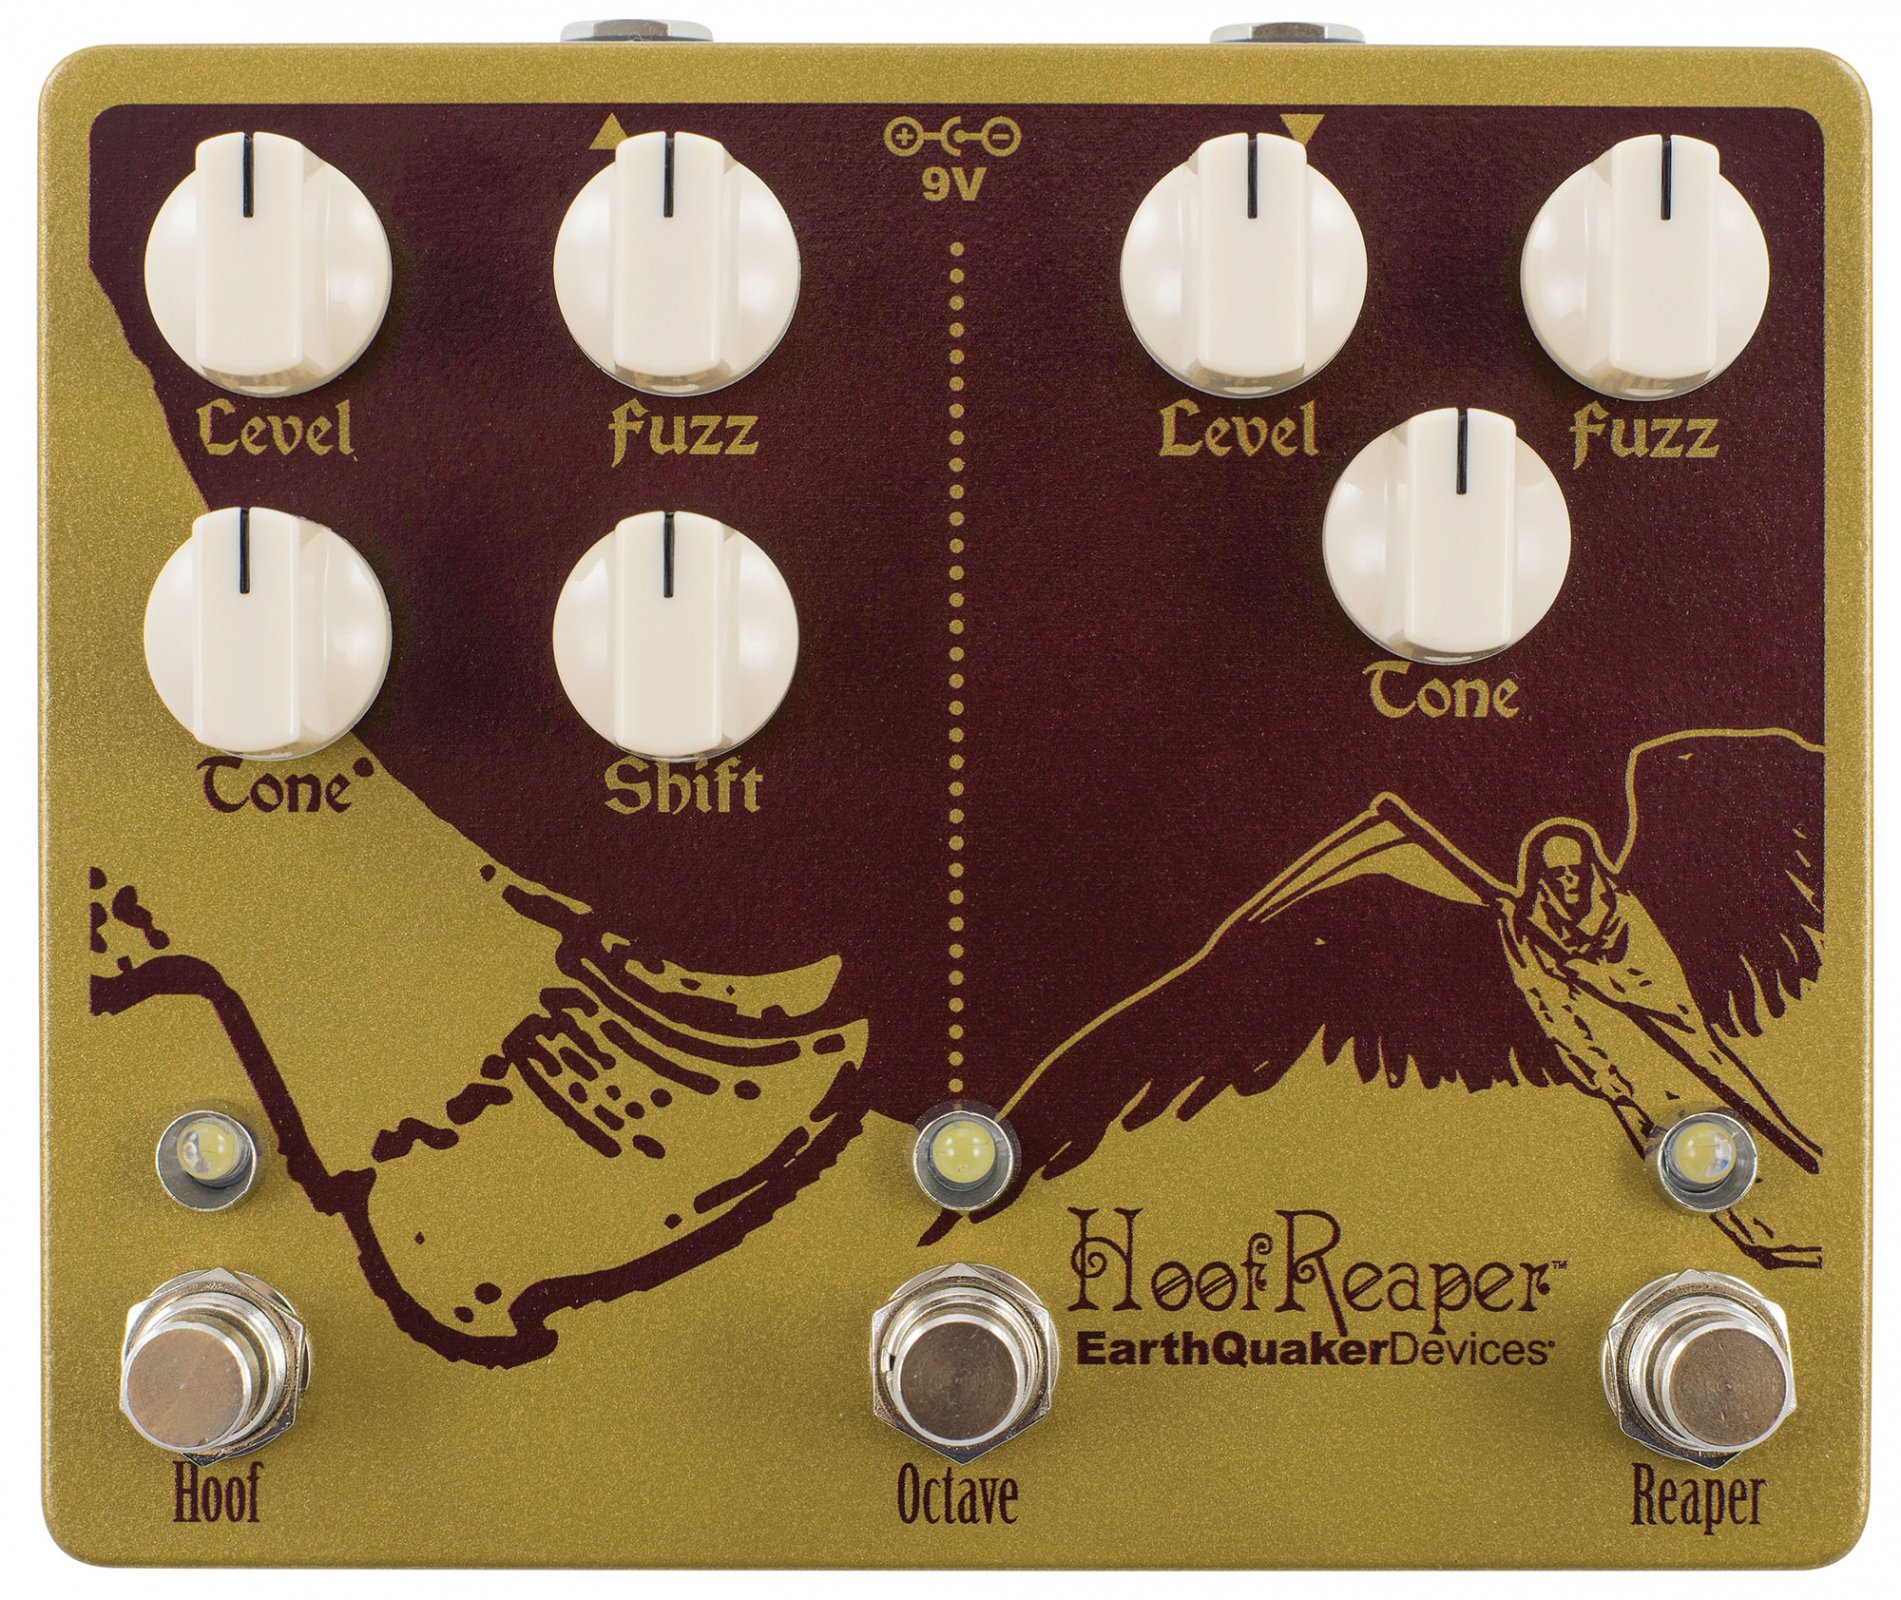 EarthQuaker Hoof Reaper Double Fuzz with Octave Up